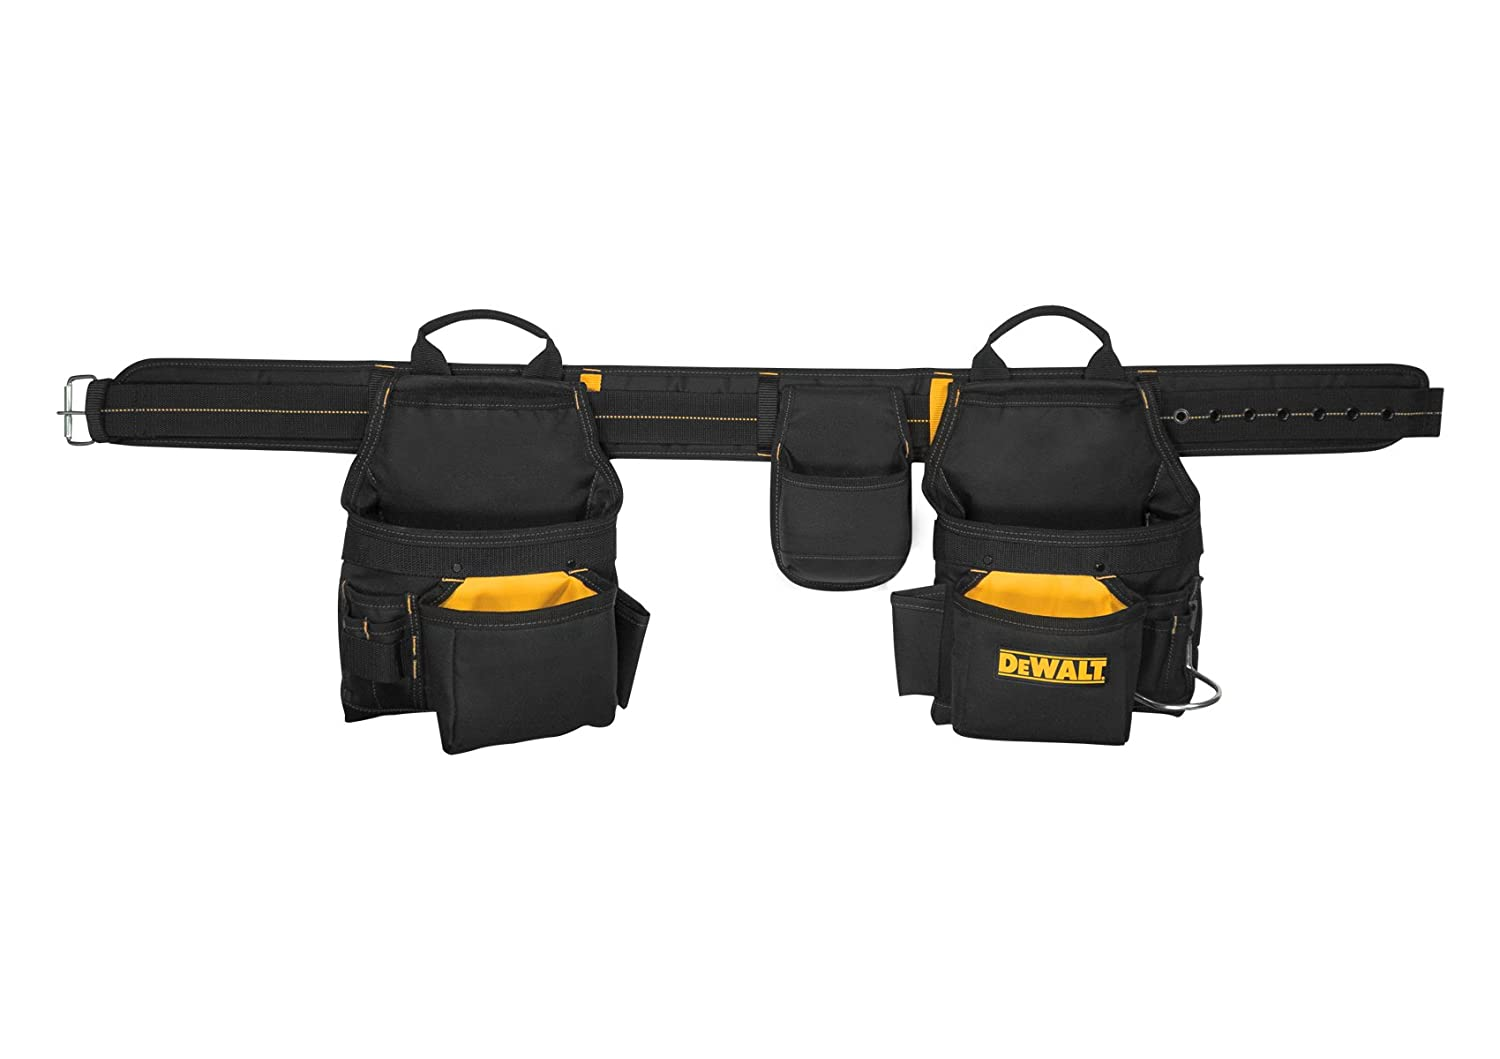 DEWALT DG5640 Deluxe Carpenter's Combo Apron, 16 Pocket